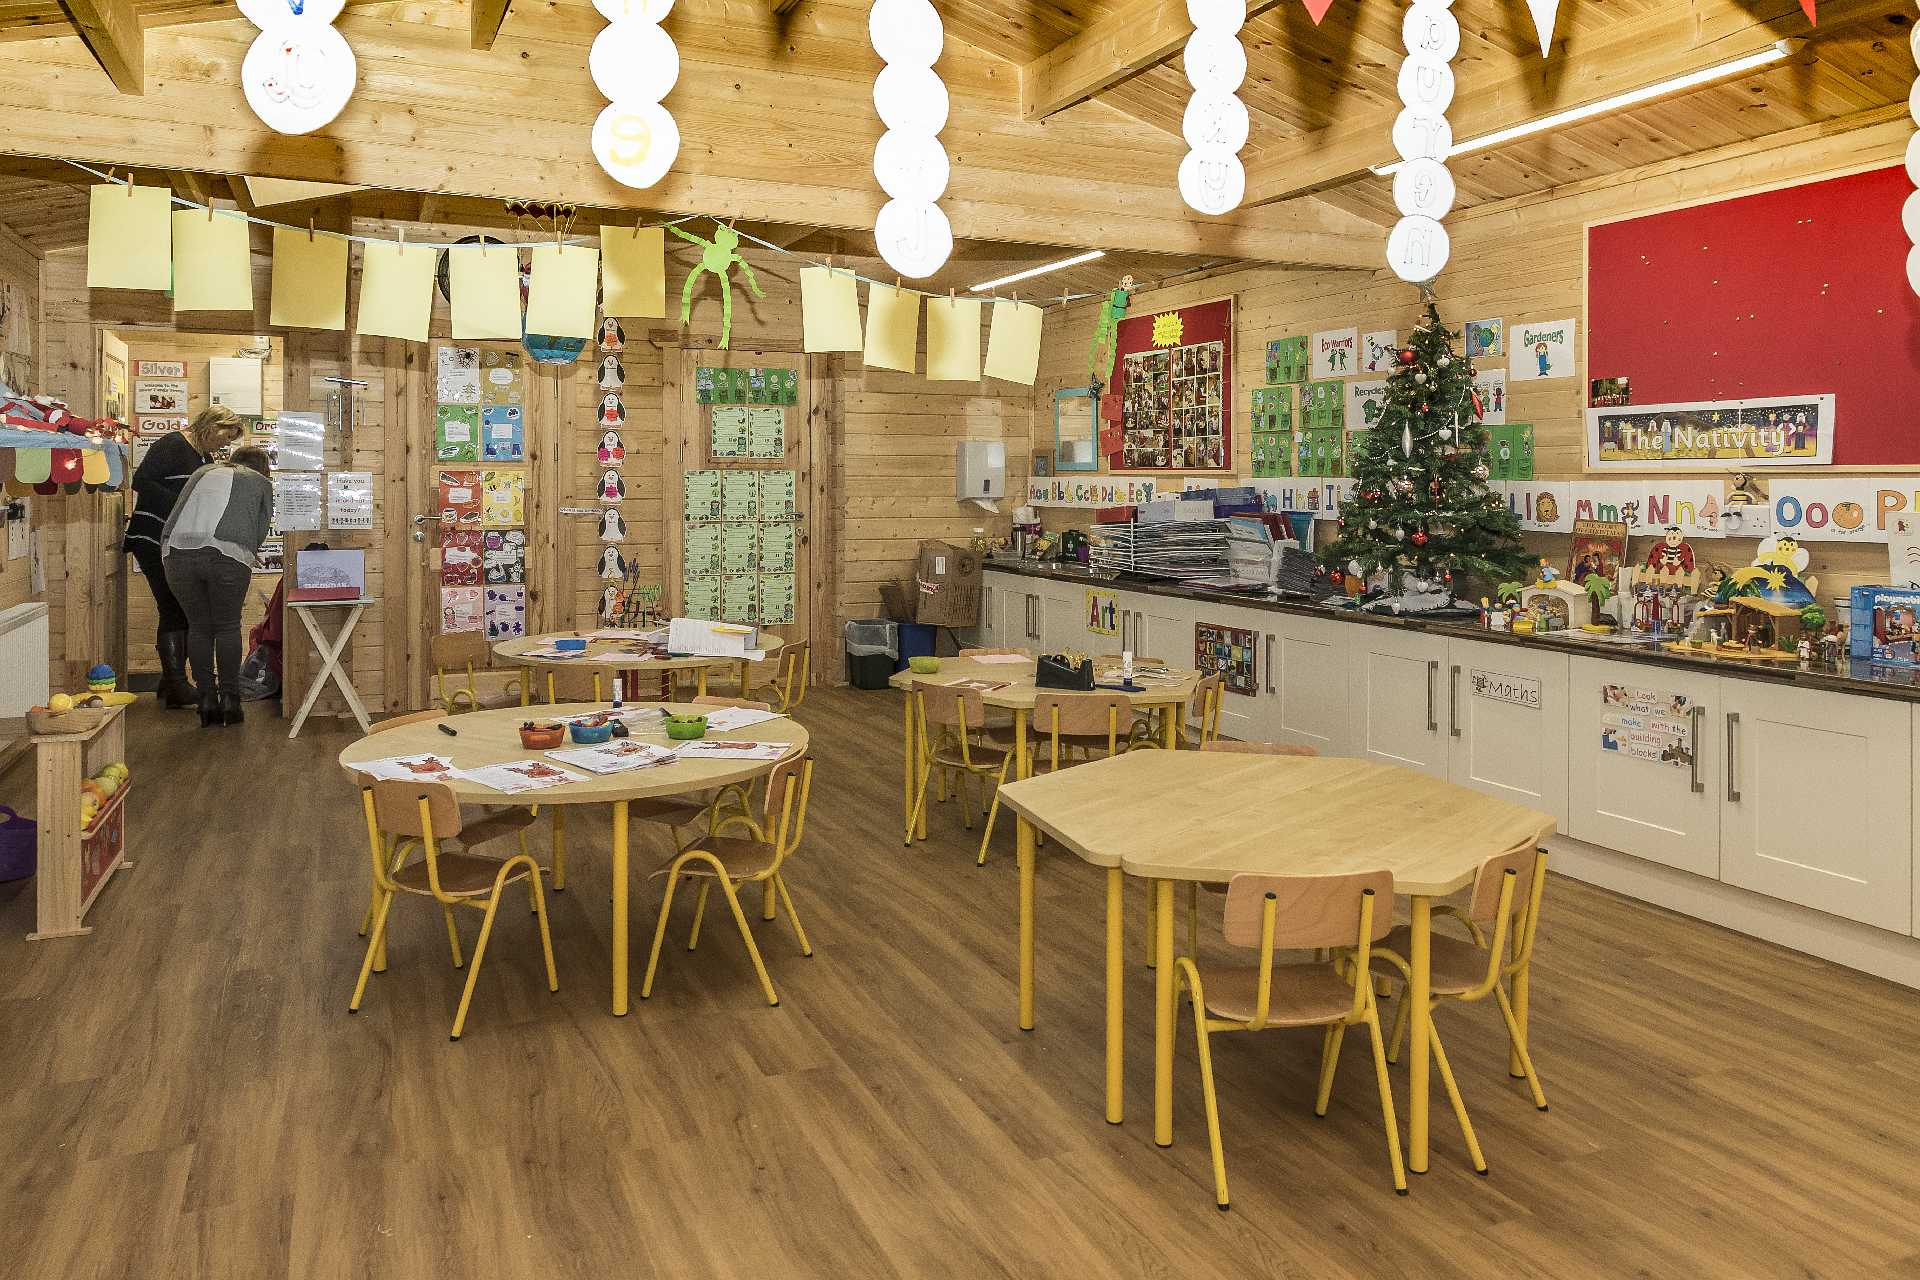 Pre-school Log Cabin Inside